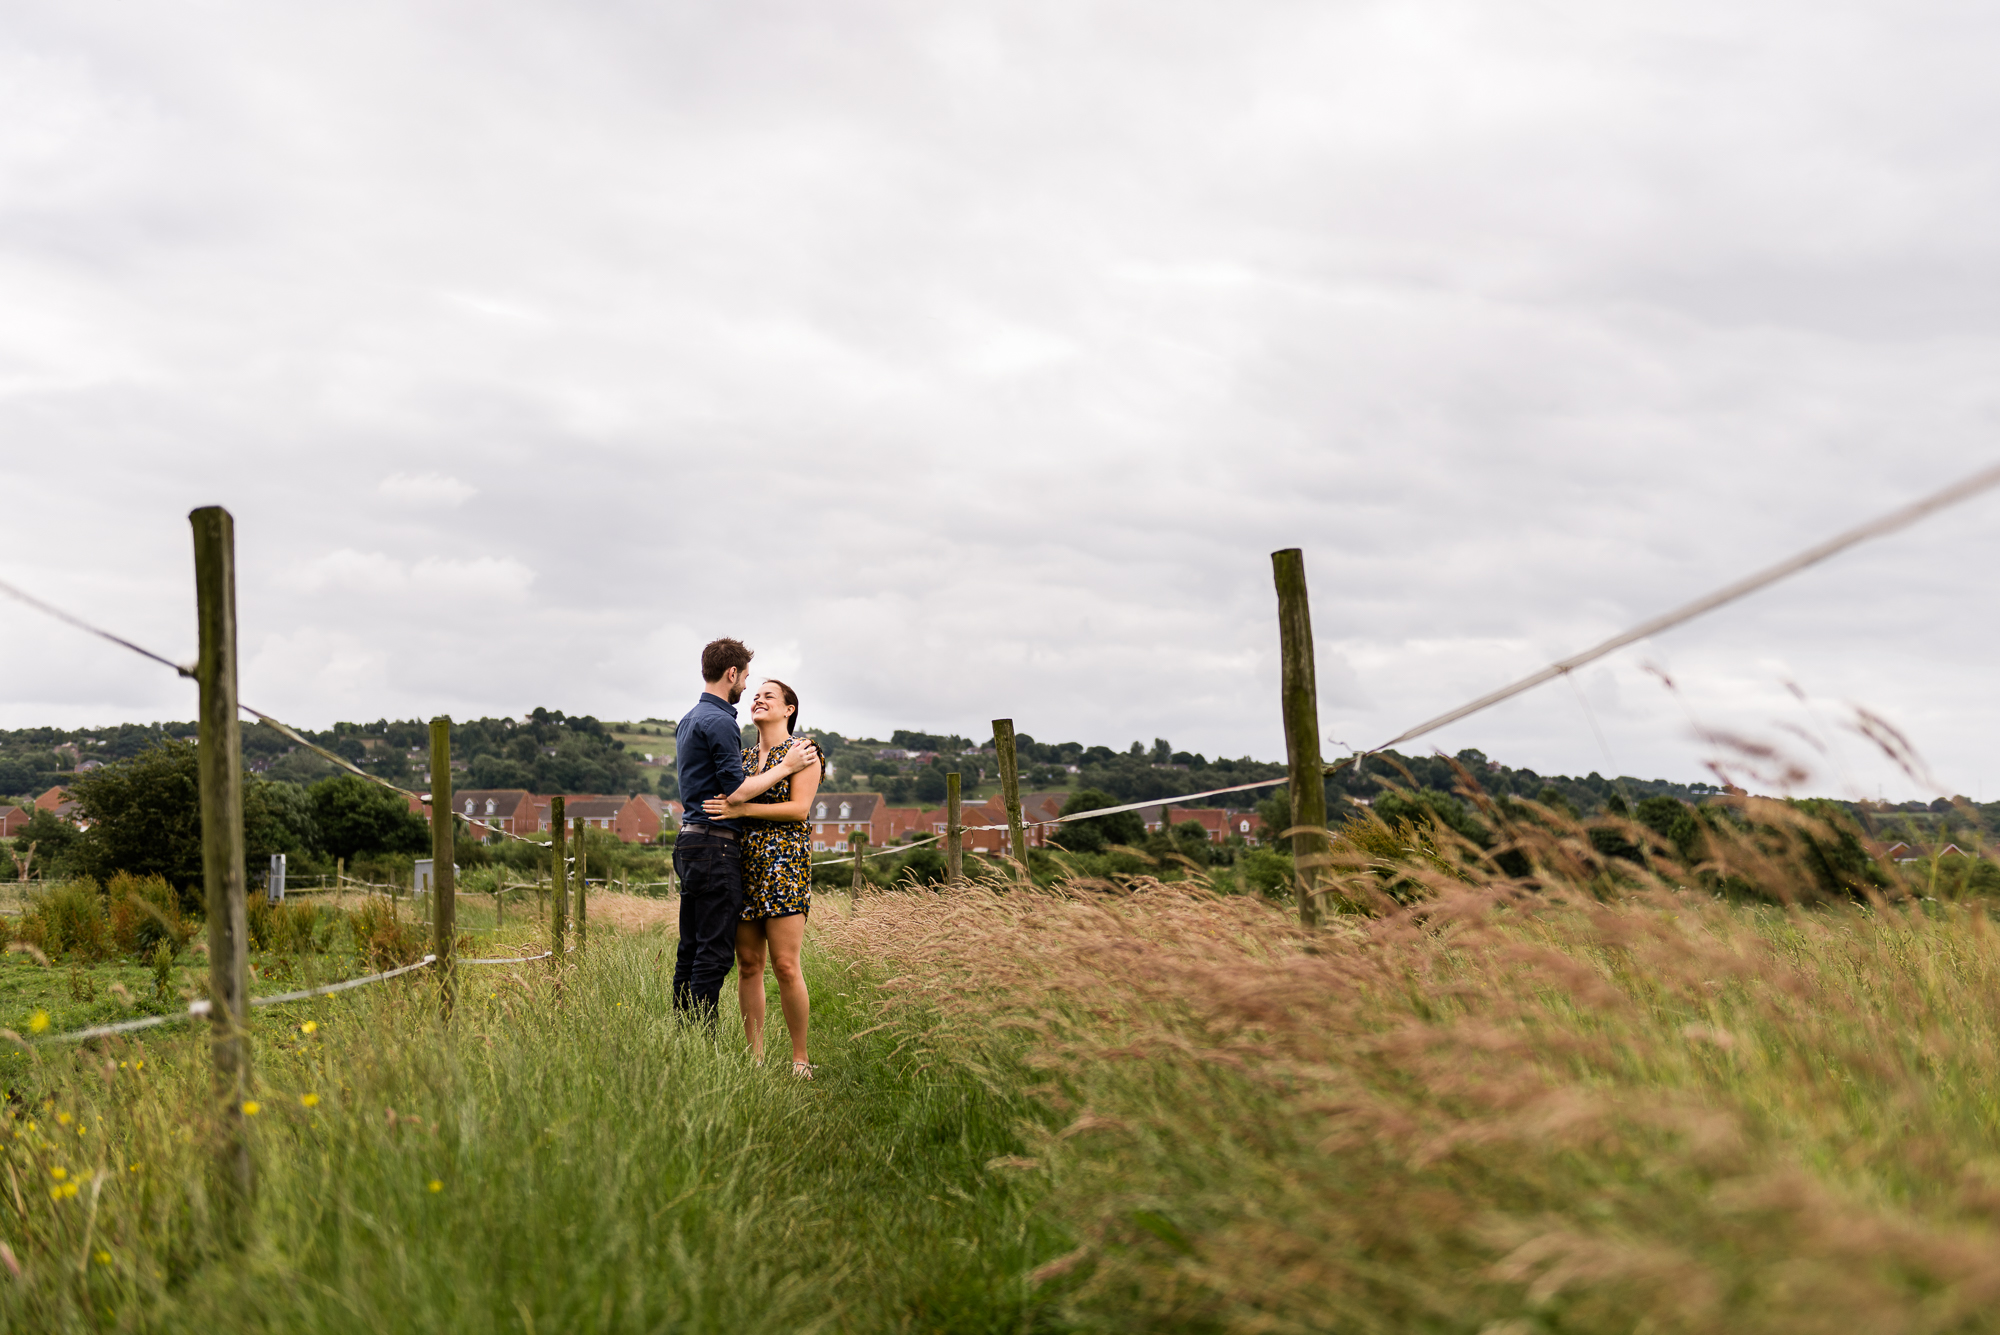 Pre-Wedding Session Engagement Photos Couple Shoot English countryside Canal - Jenny Harper Photography-7.jpg